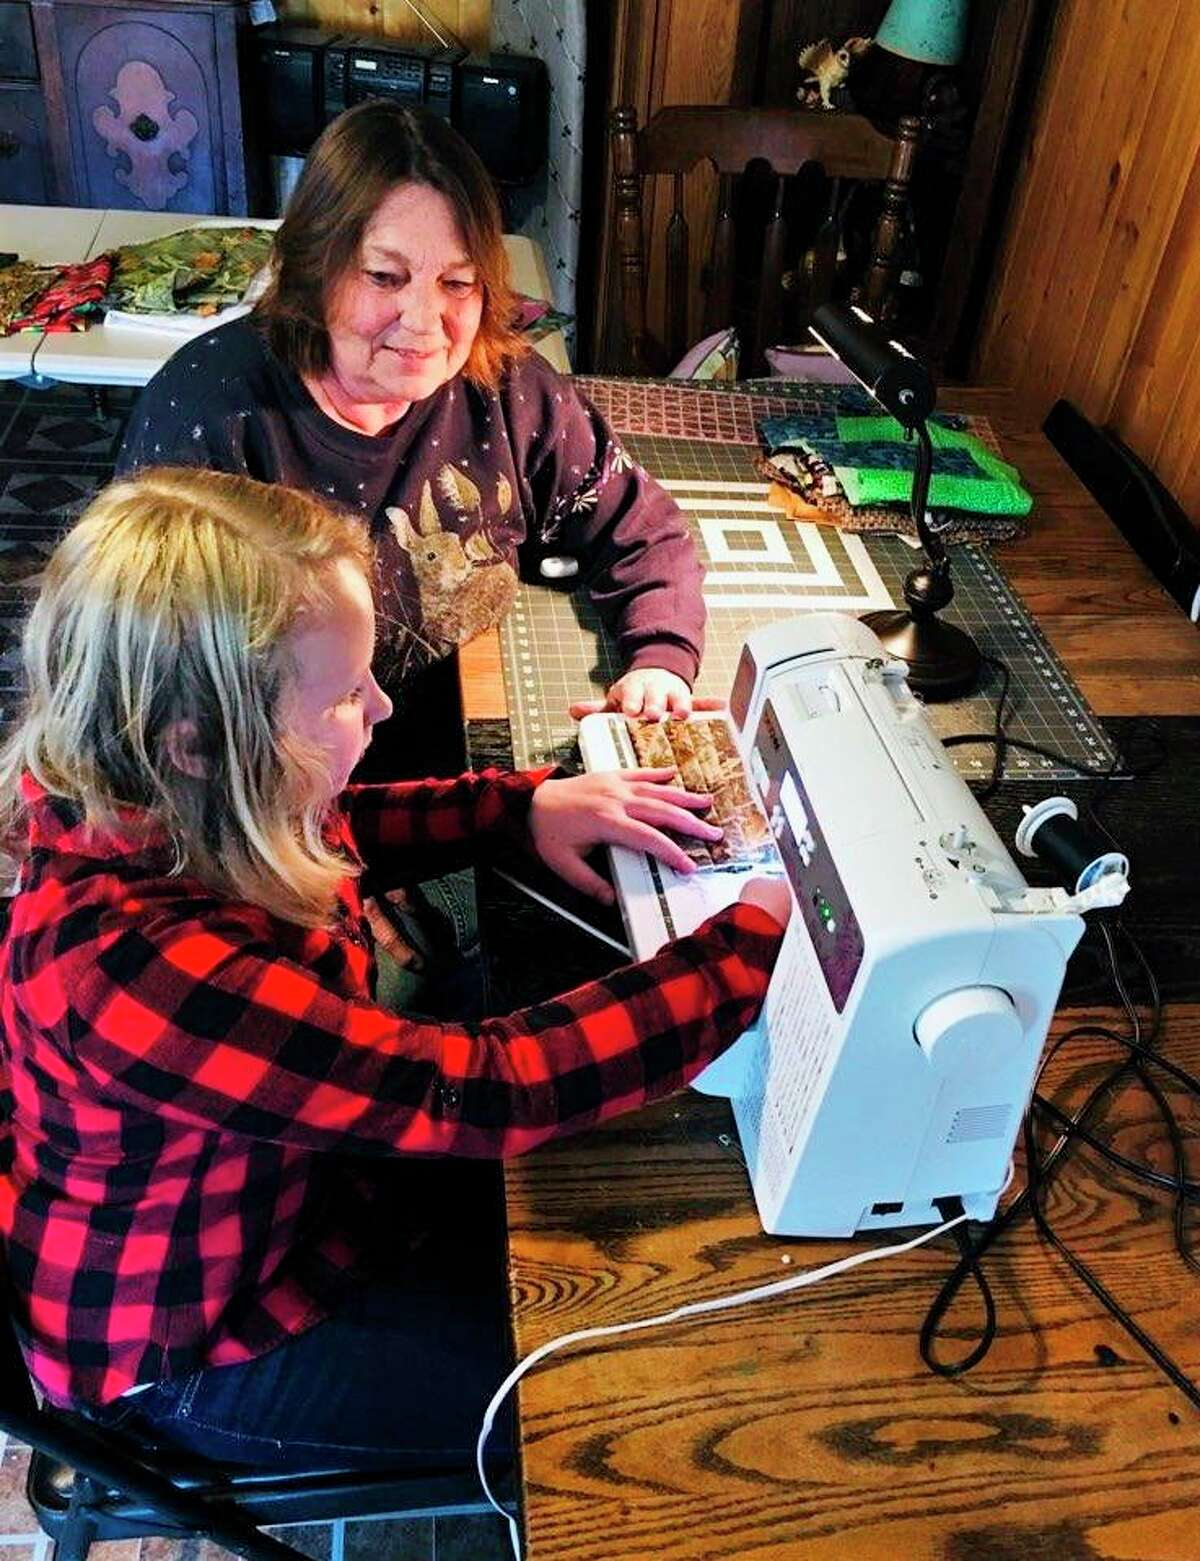 """Ten-year-old Paris resident Lily Modene received her first sewing machine from her grandmother, """"Grandma Julie,"""" and was taught how to sew. Featured are the two of them as Modene creates a mask for a local in need. (Courtesy)"""